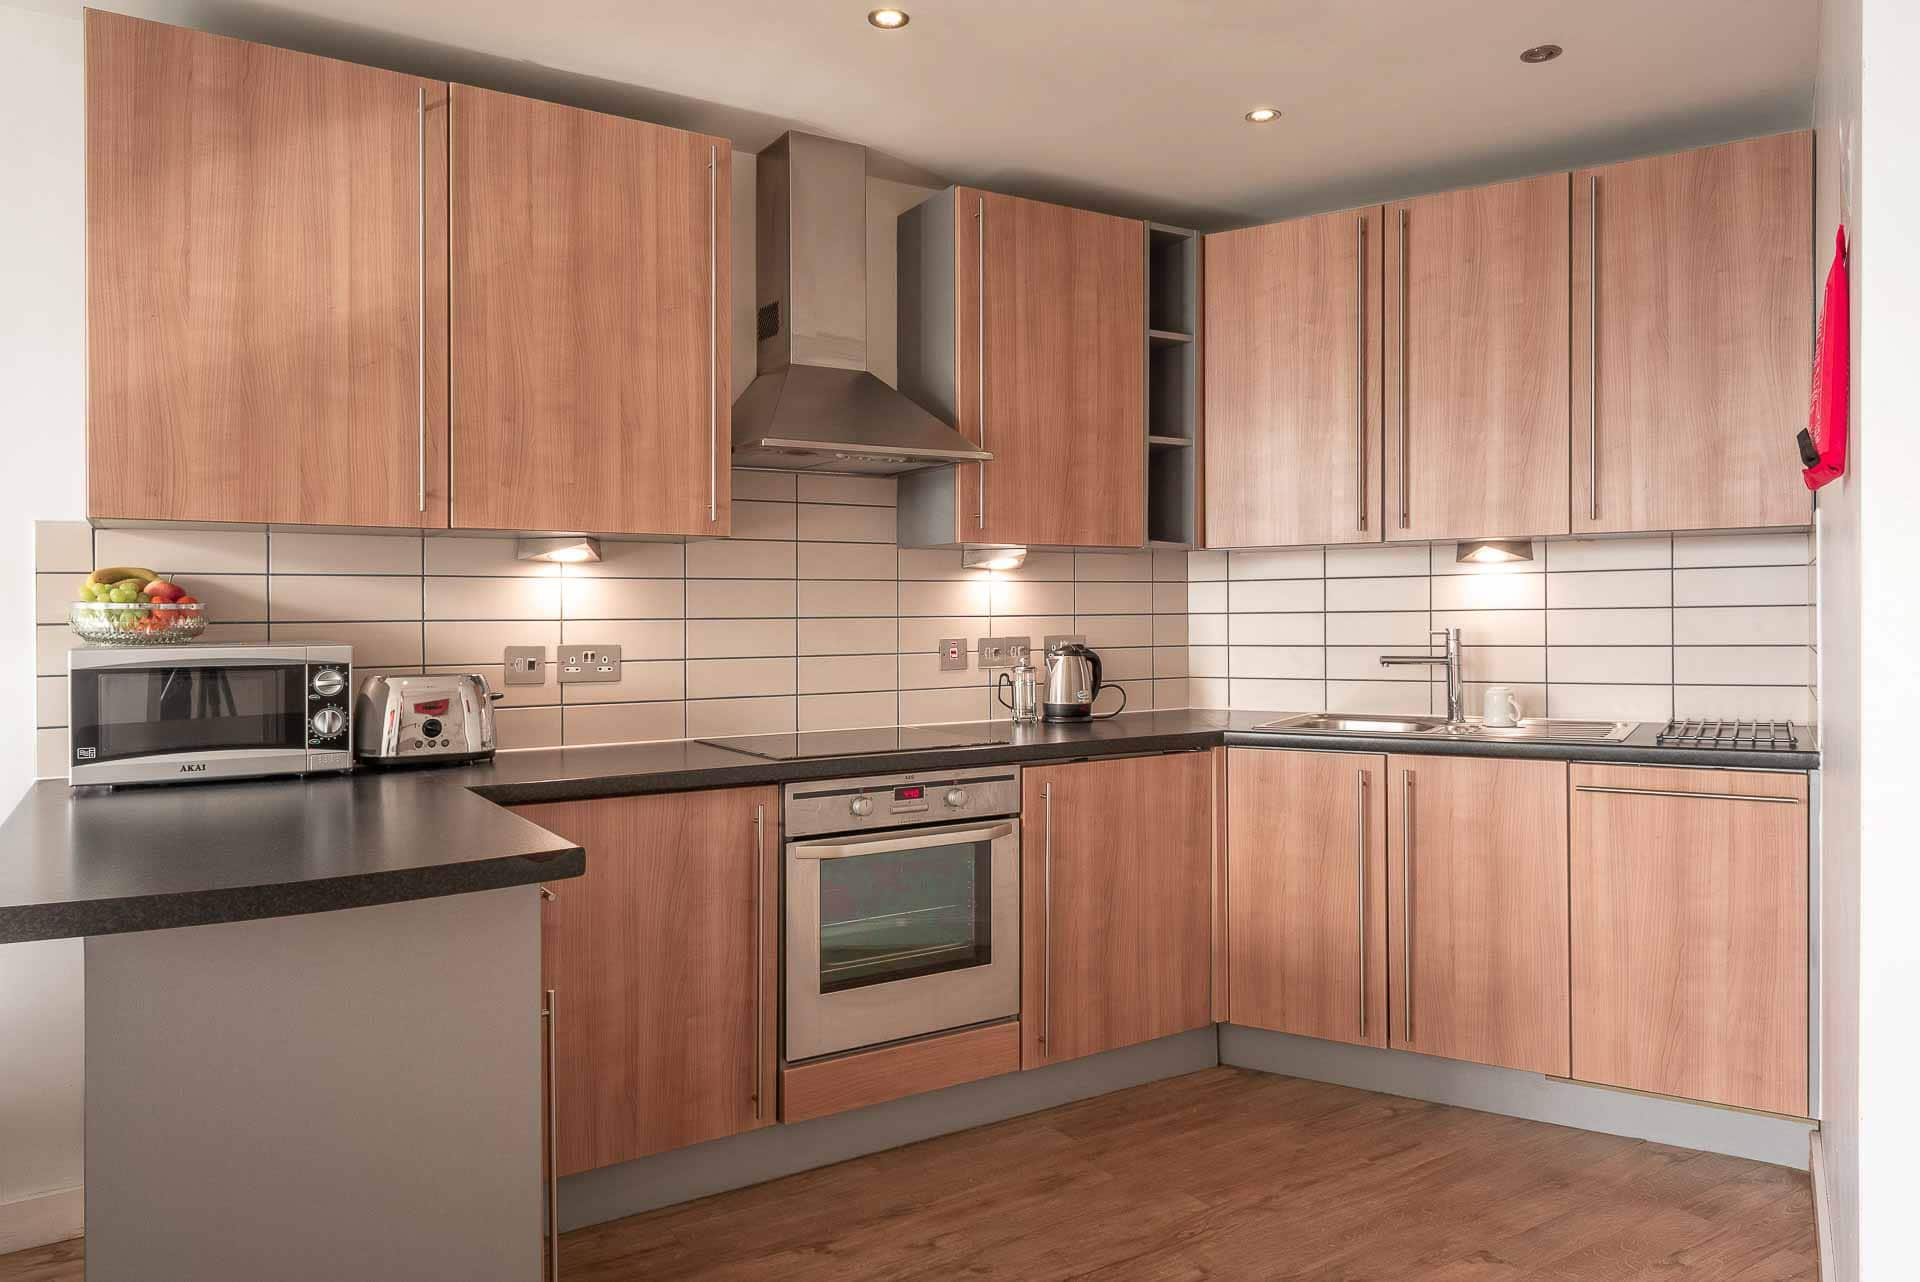 Equipped kitchen at Premier Suites Liverpool, Centre, Liverpool - Citybase Apartments